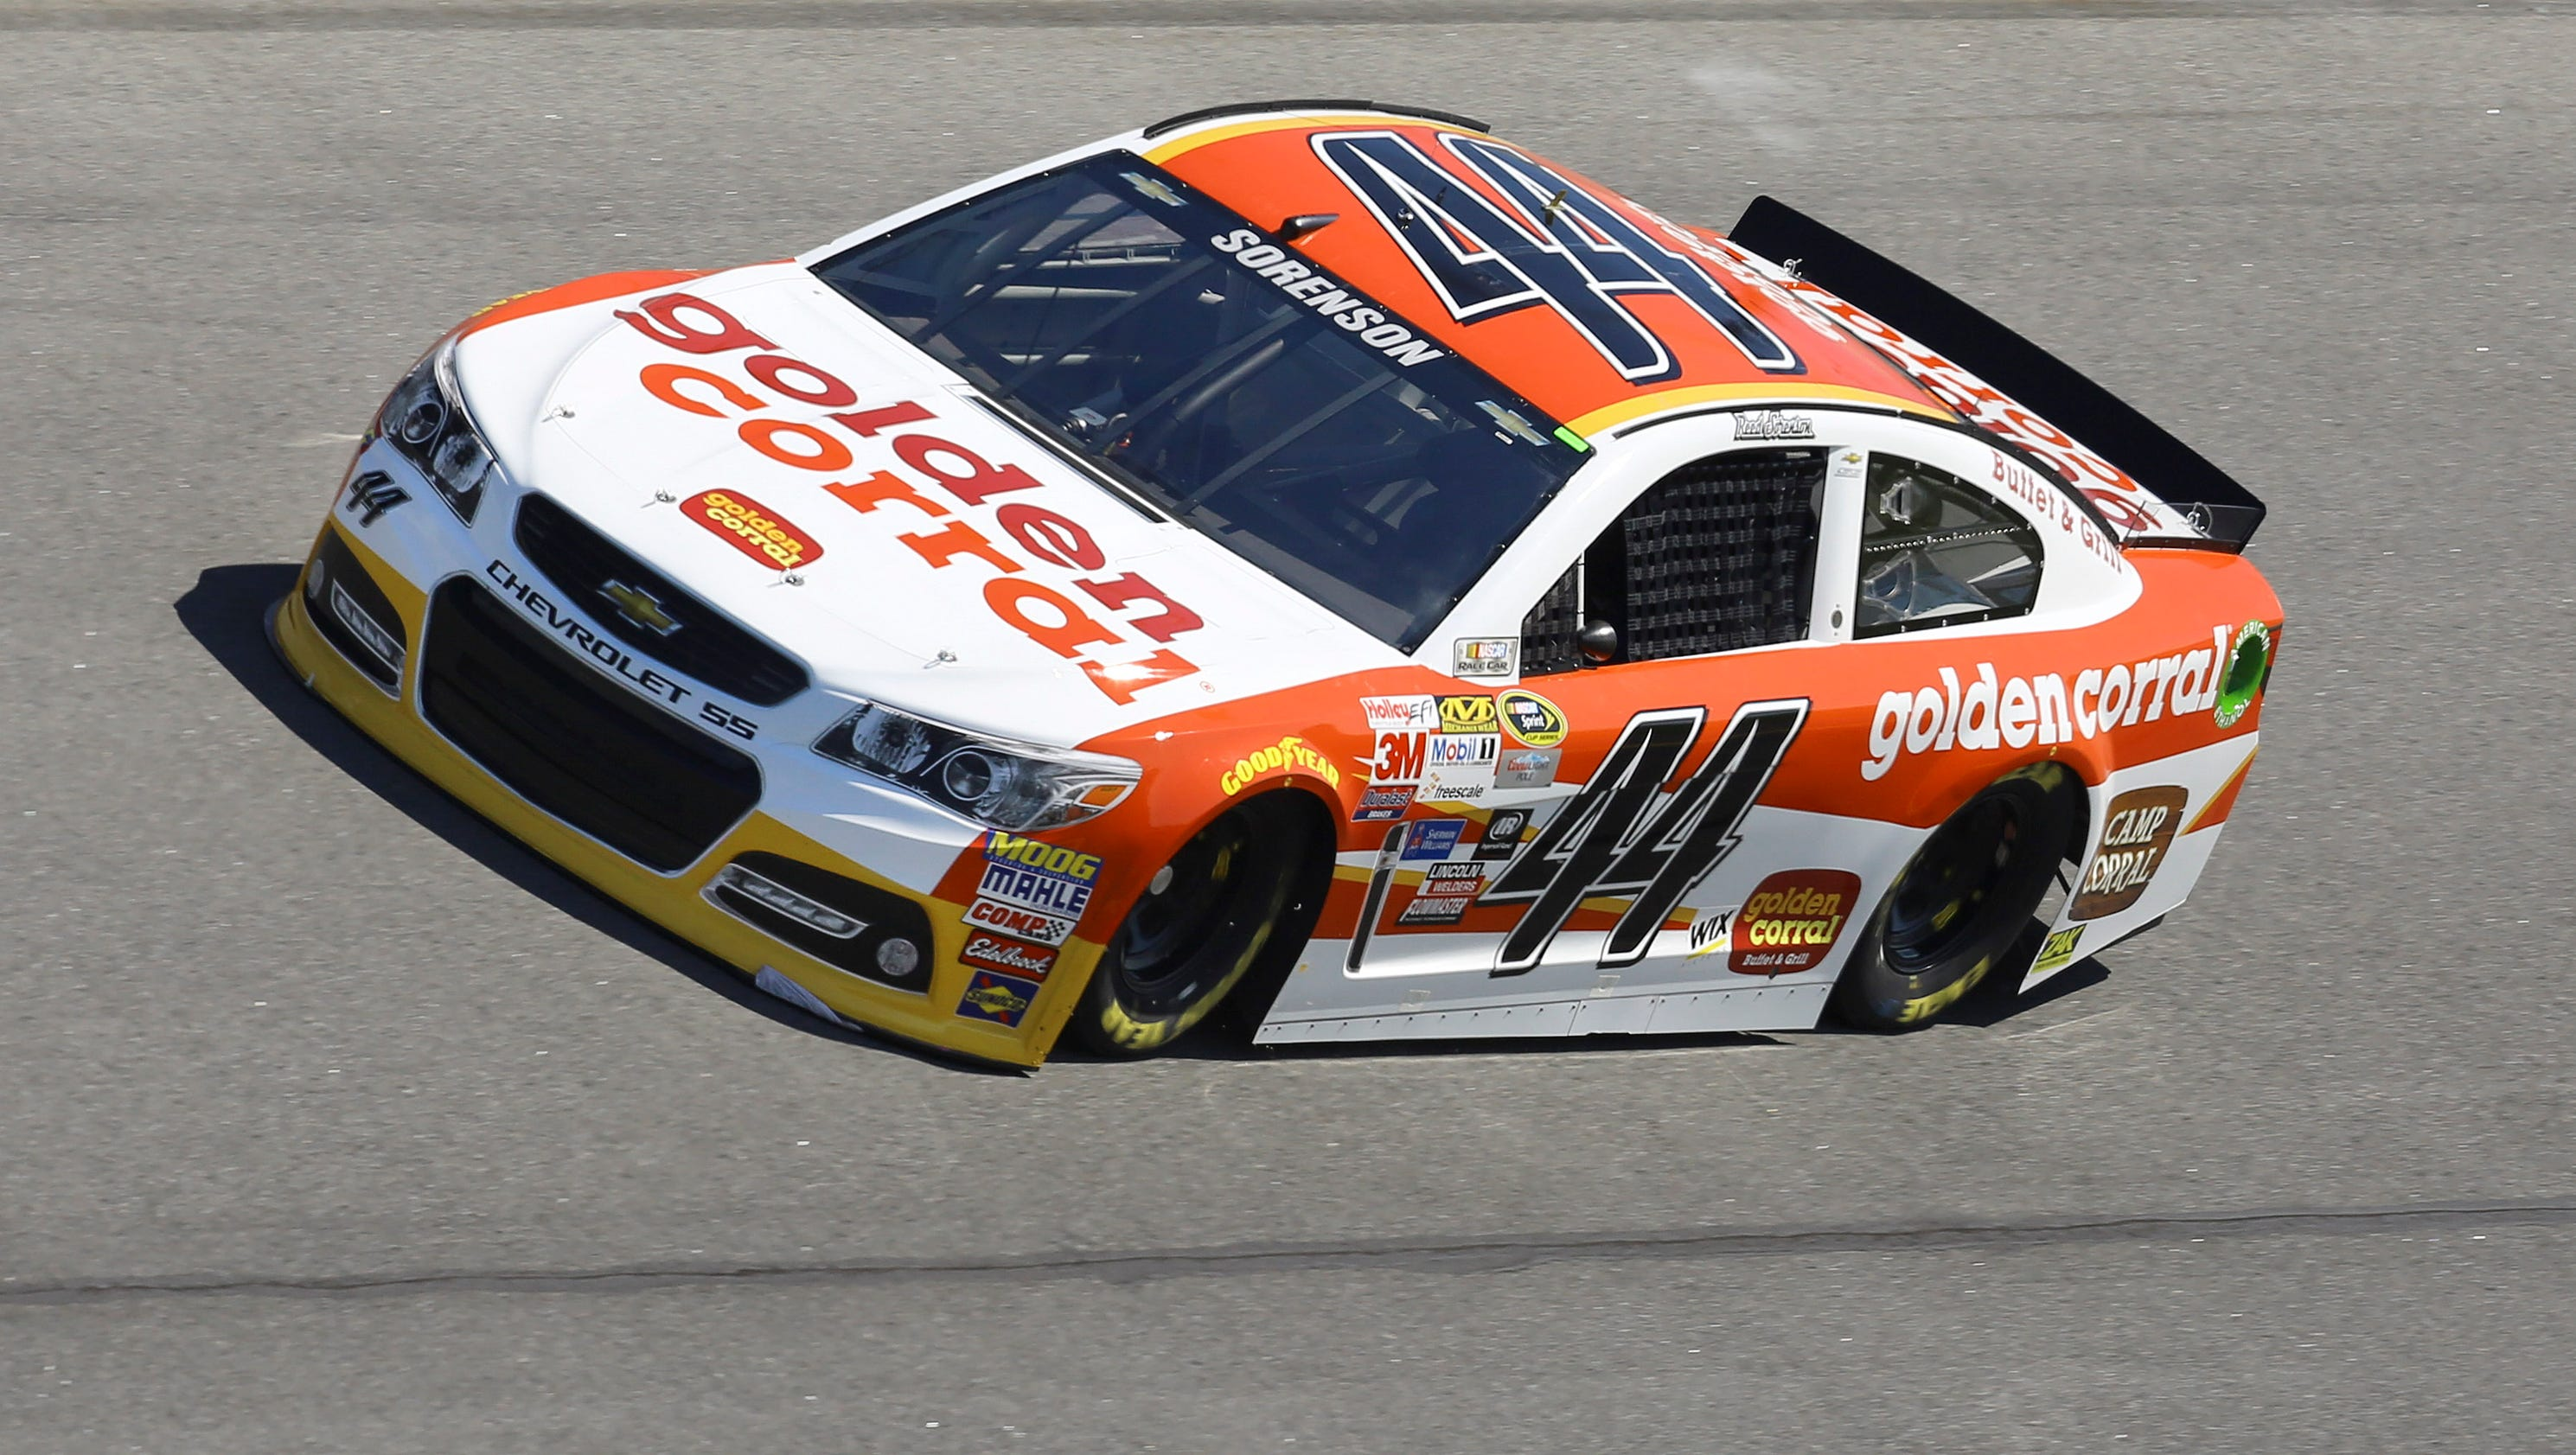 Travis Kvapil's team withdraws from race after car theft